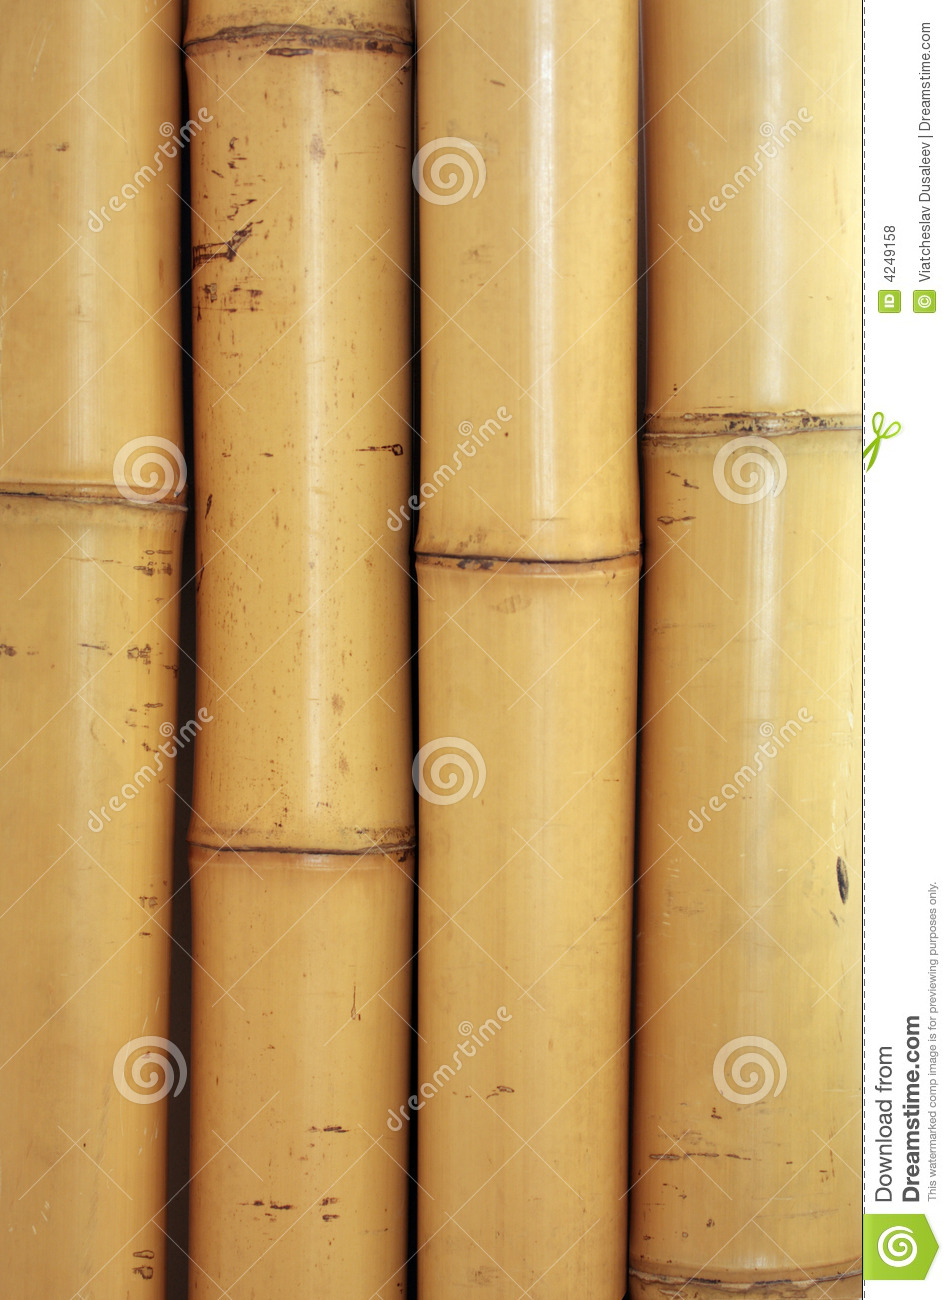 Bamboo Texture Stock Photo Image Of Traditional Stick